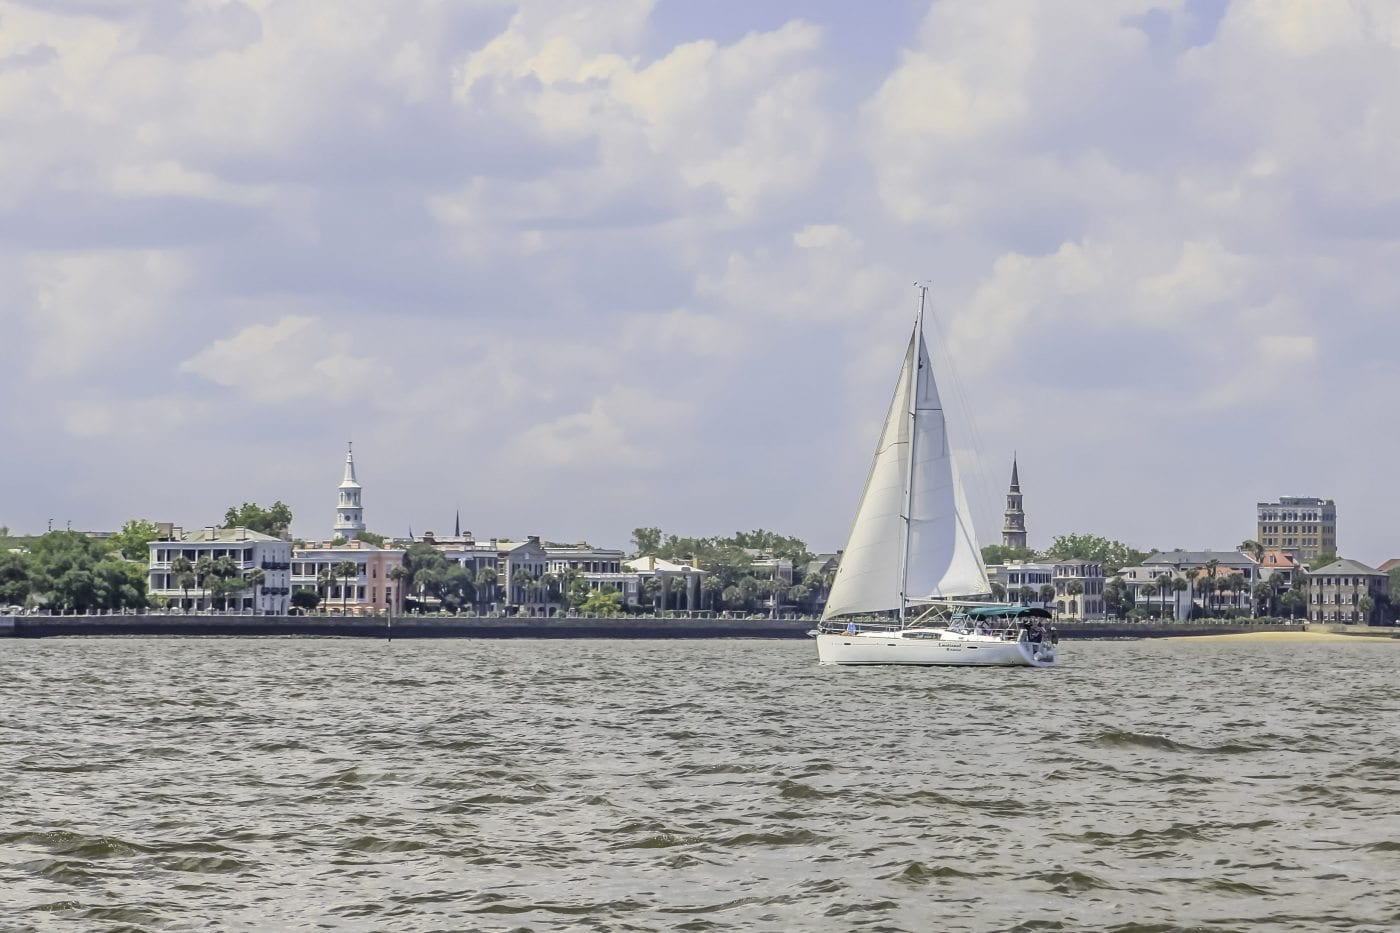 Sailboat infront of the city of Charleston, SC